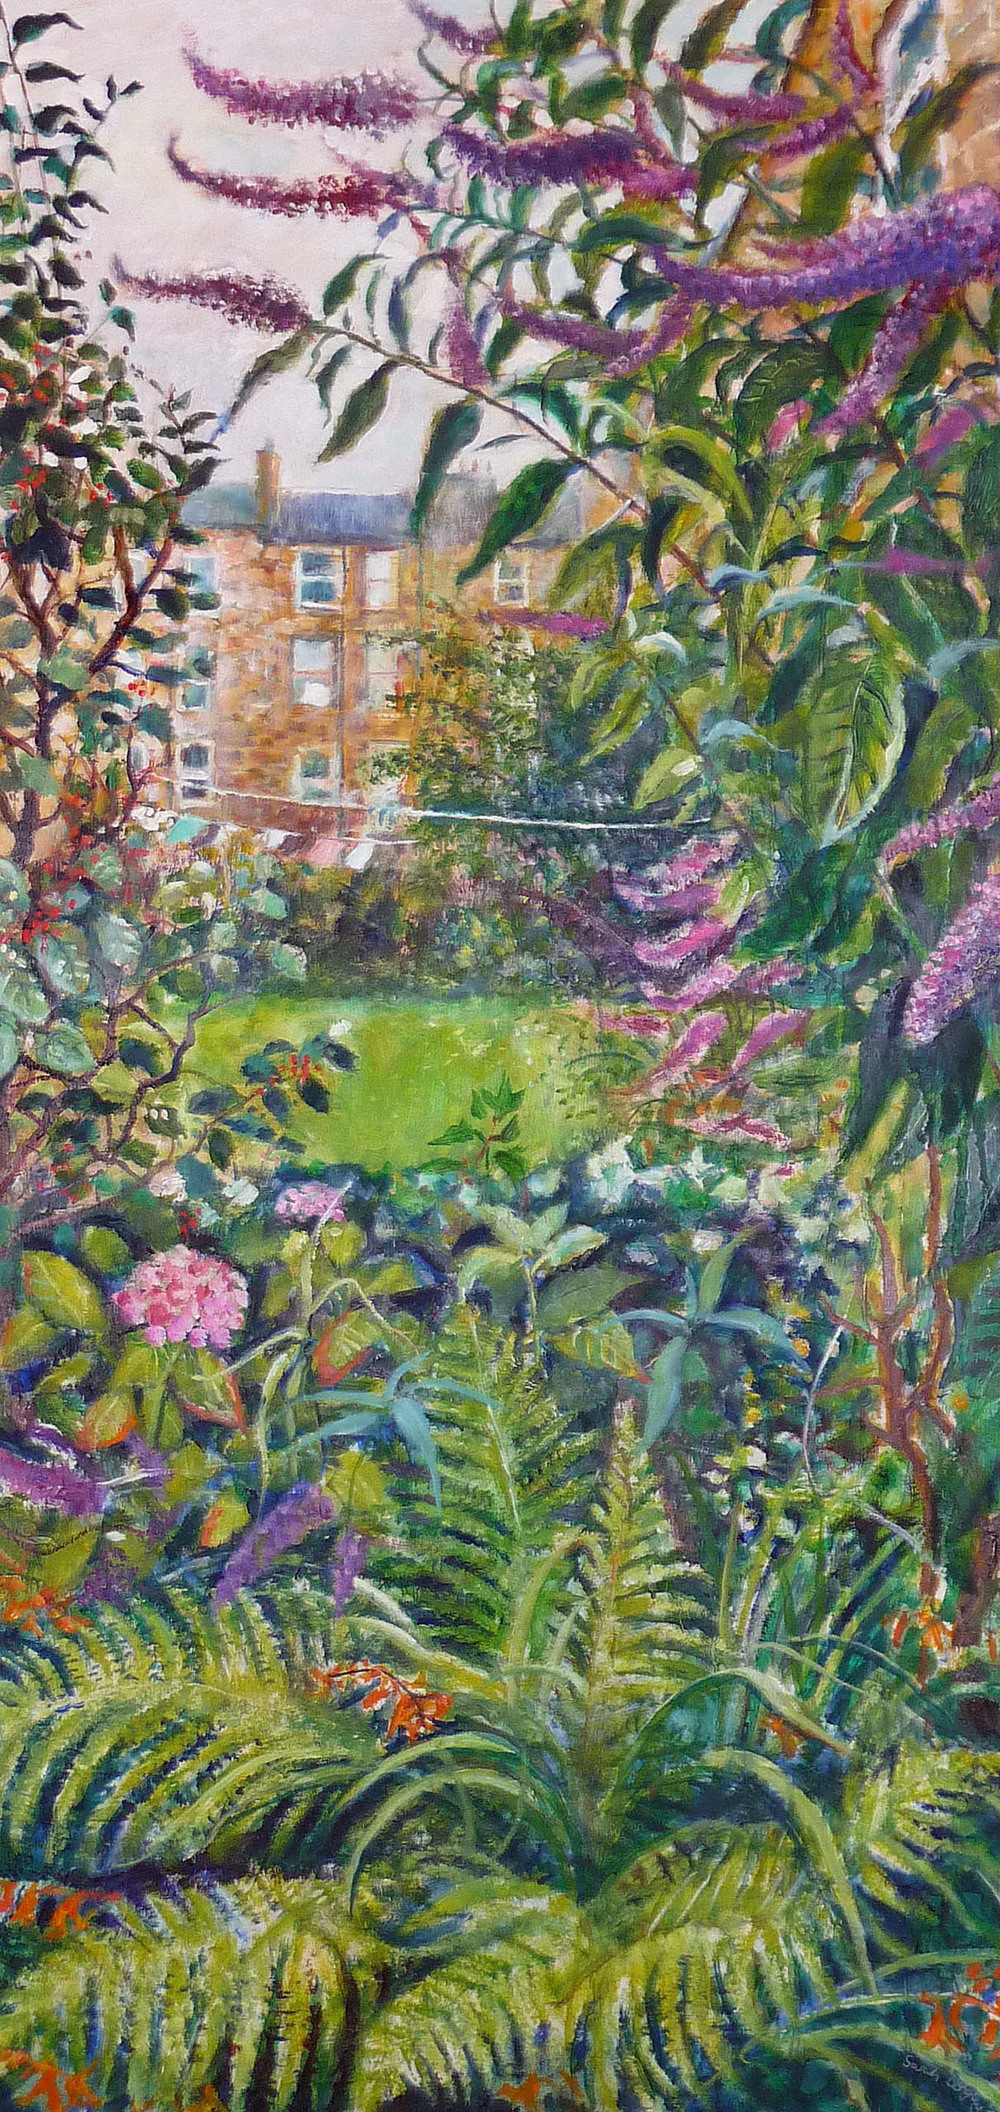 Sarah Longley_-_Back Garden Triptych 2 - Budleia and Ferns_oil on board_138 x 70cm.jpg